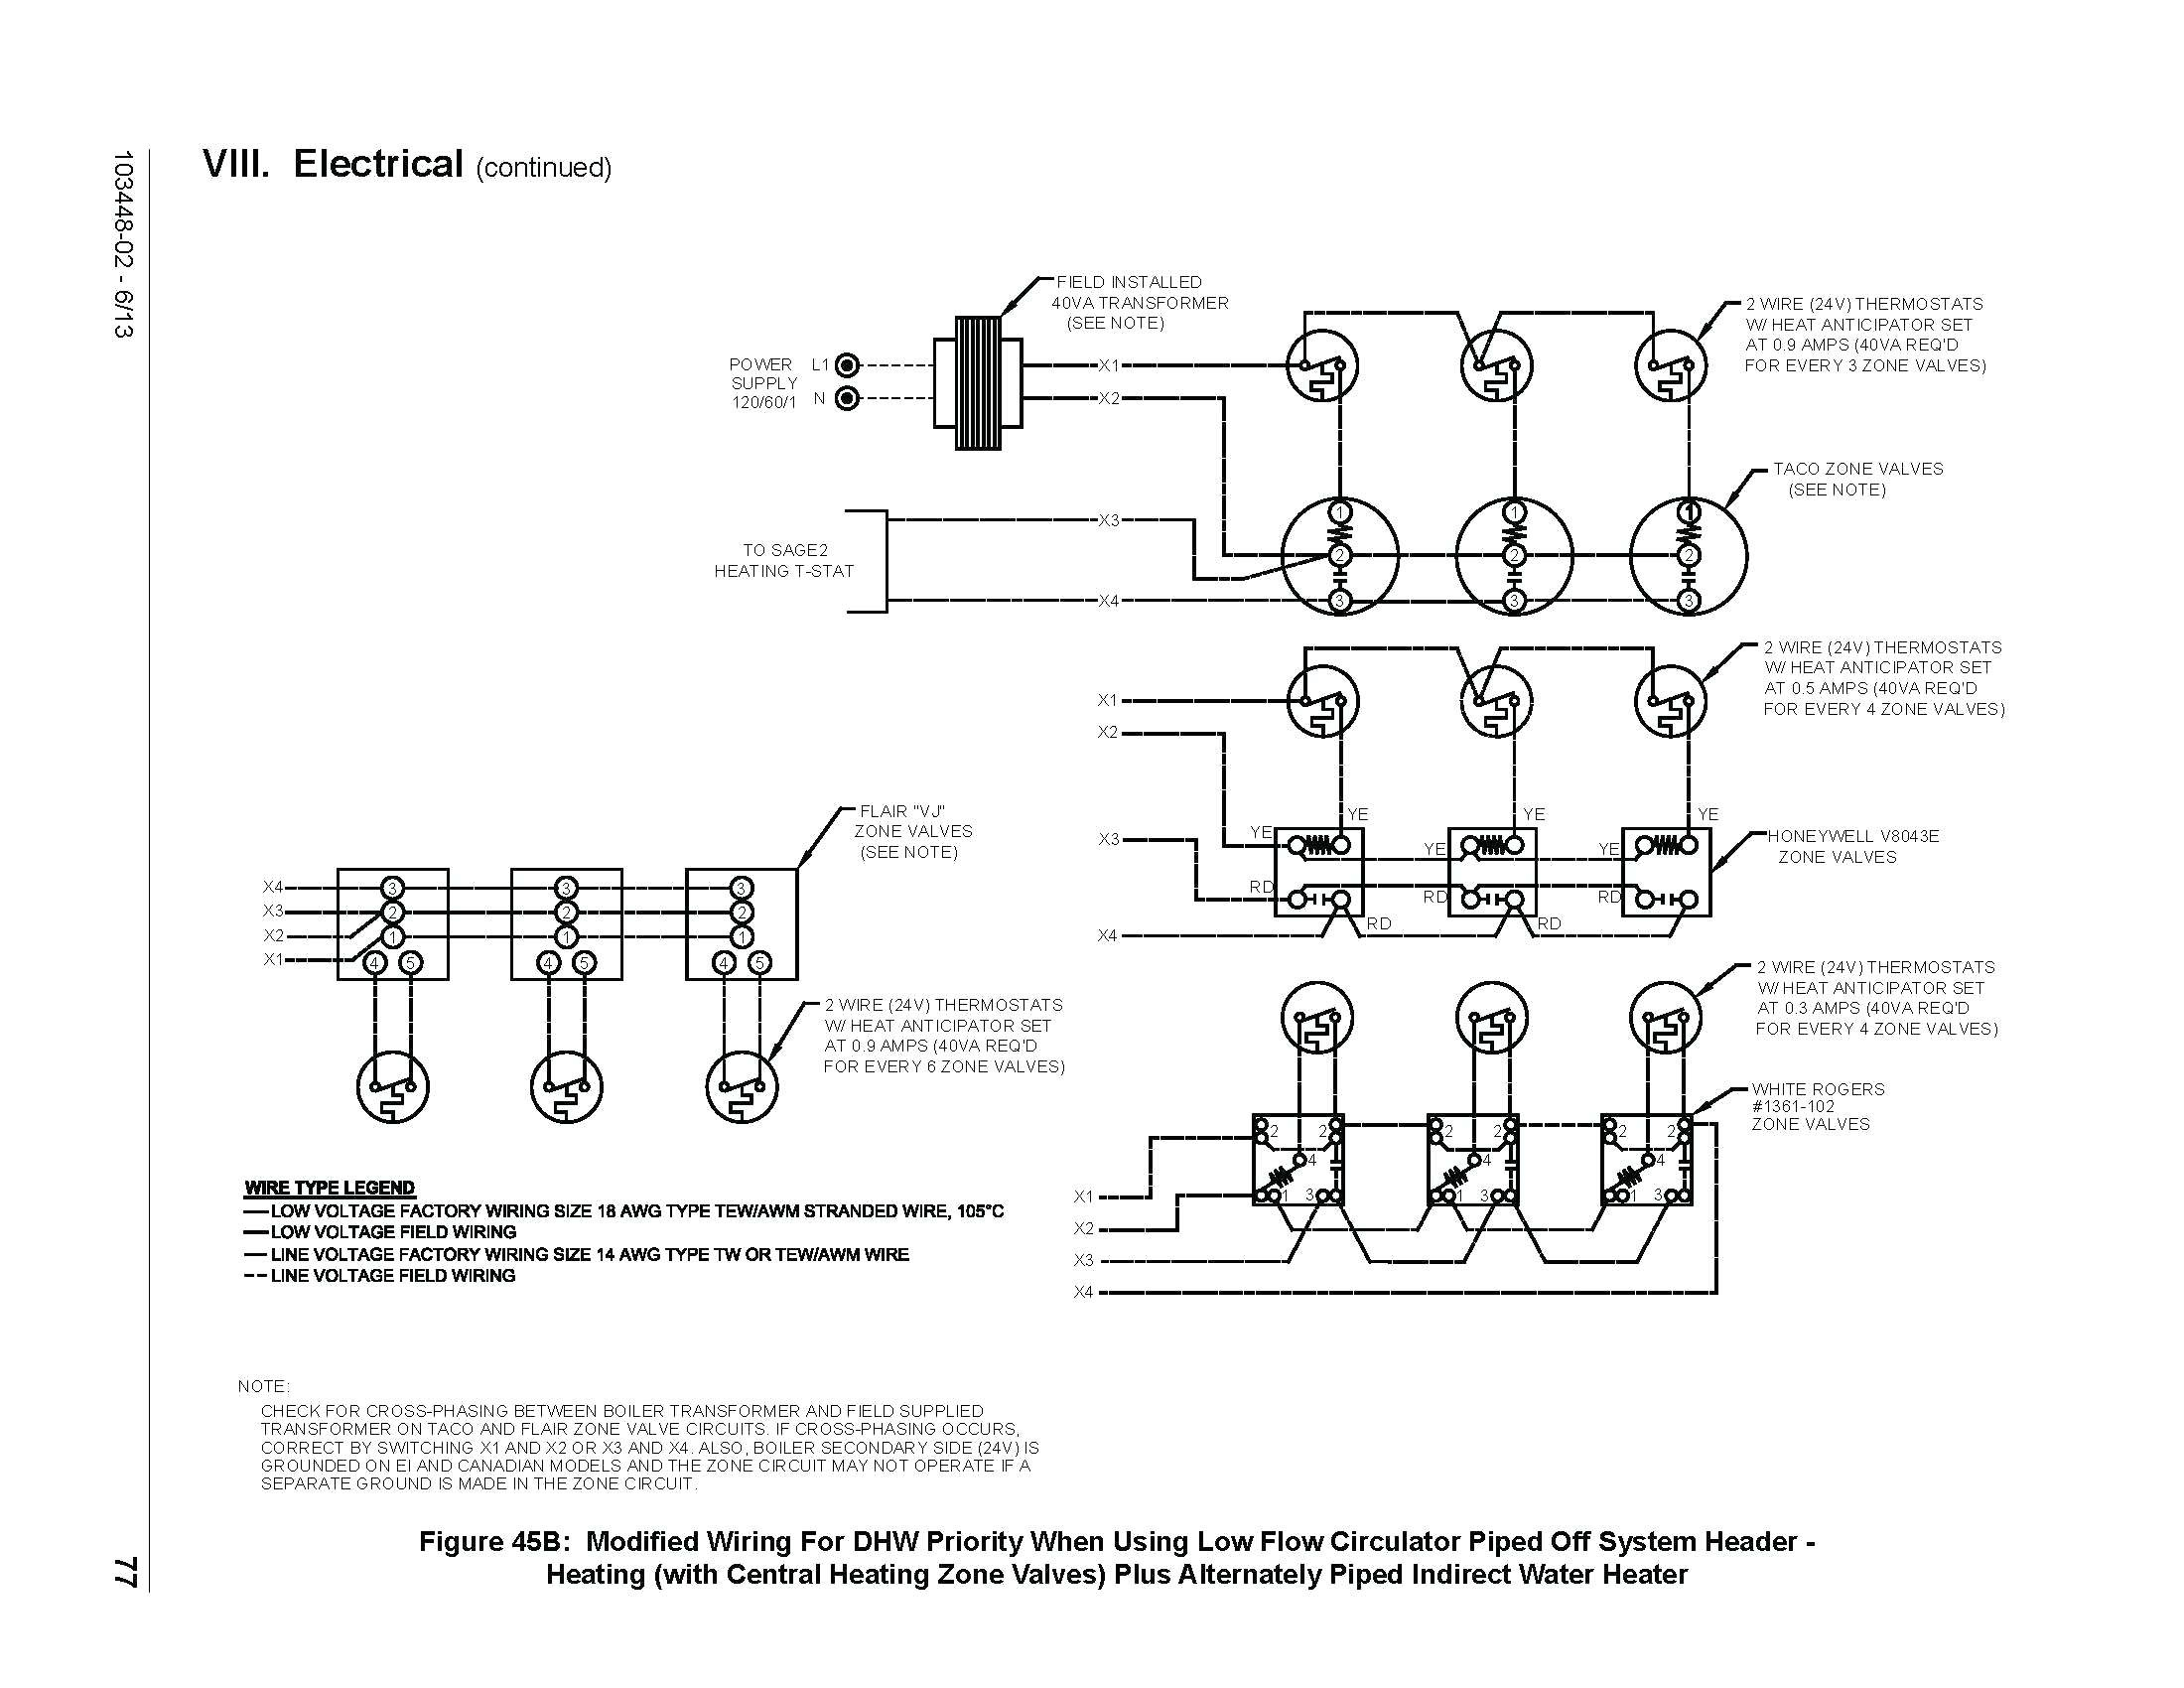 wrg 3746] fahrenheat thermostat wiring diagram Marley Thermostat Wiring Diagram